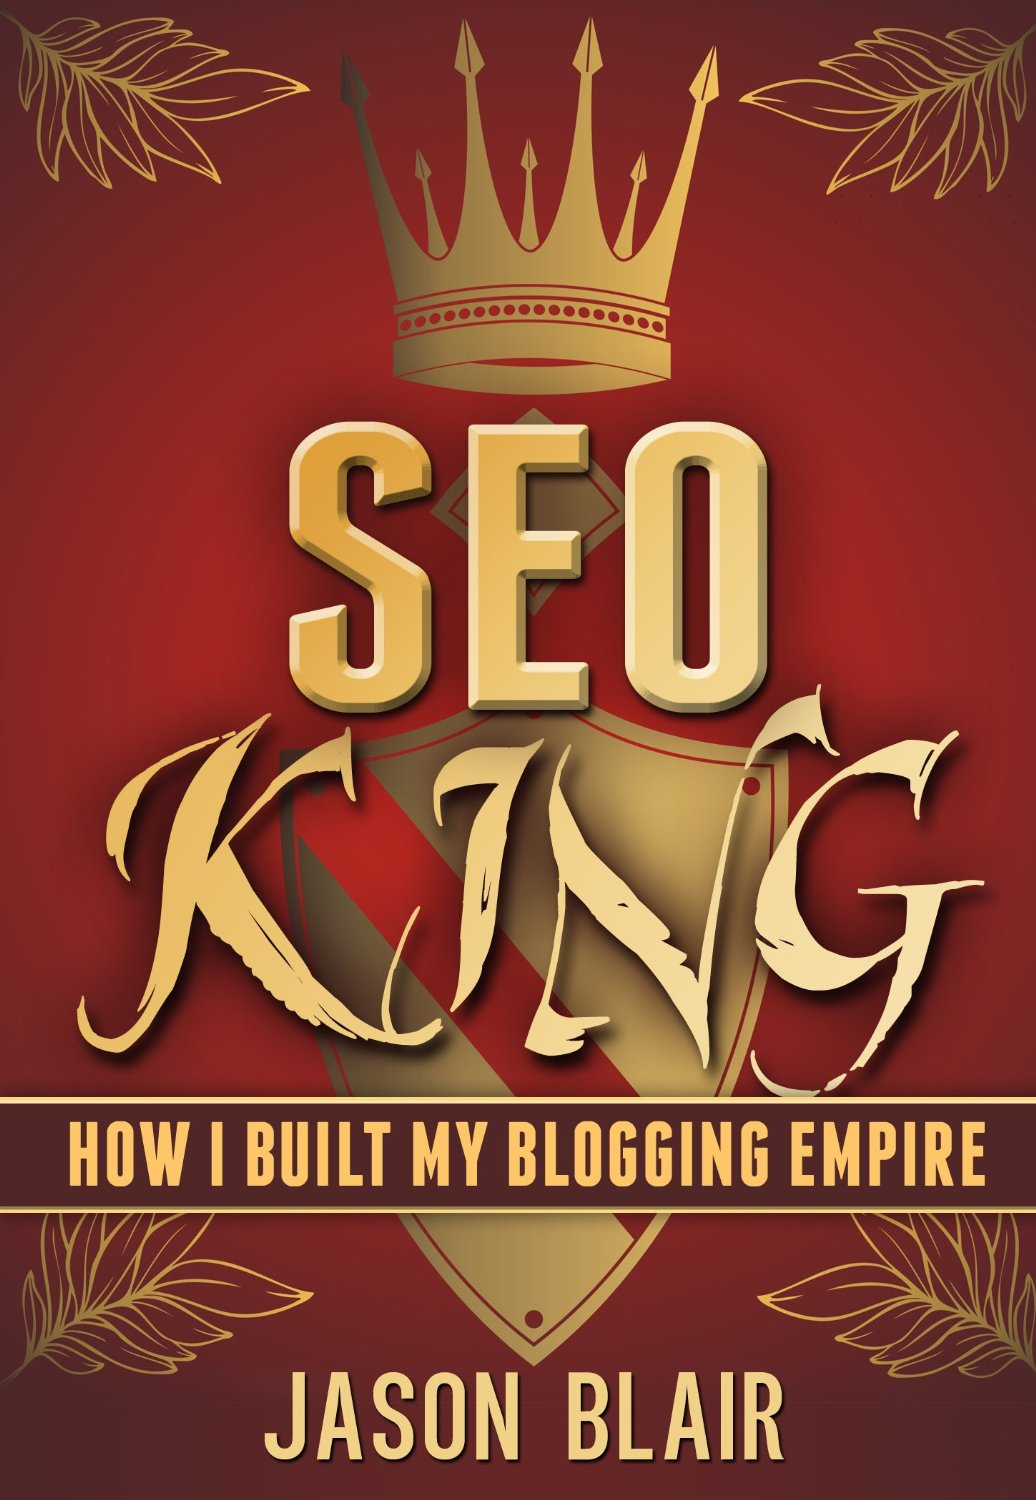 SEO King How I Built My Blogging Empire written by Jason Blair